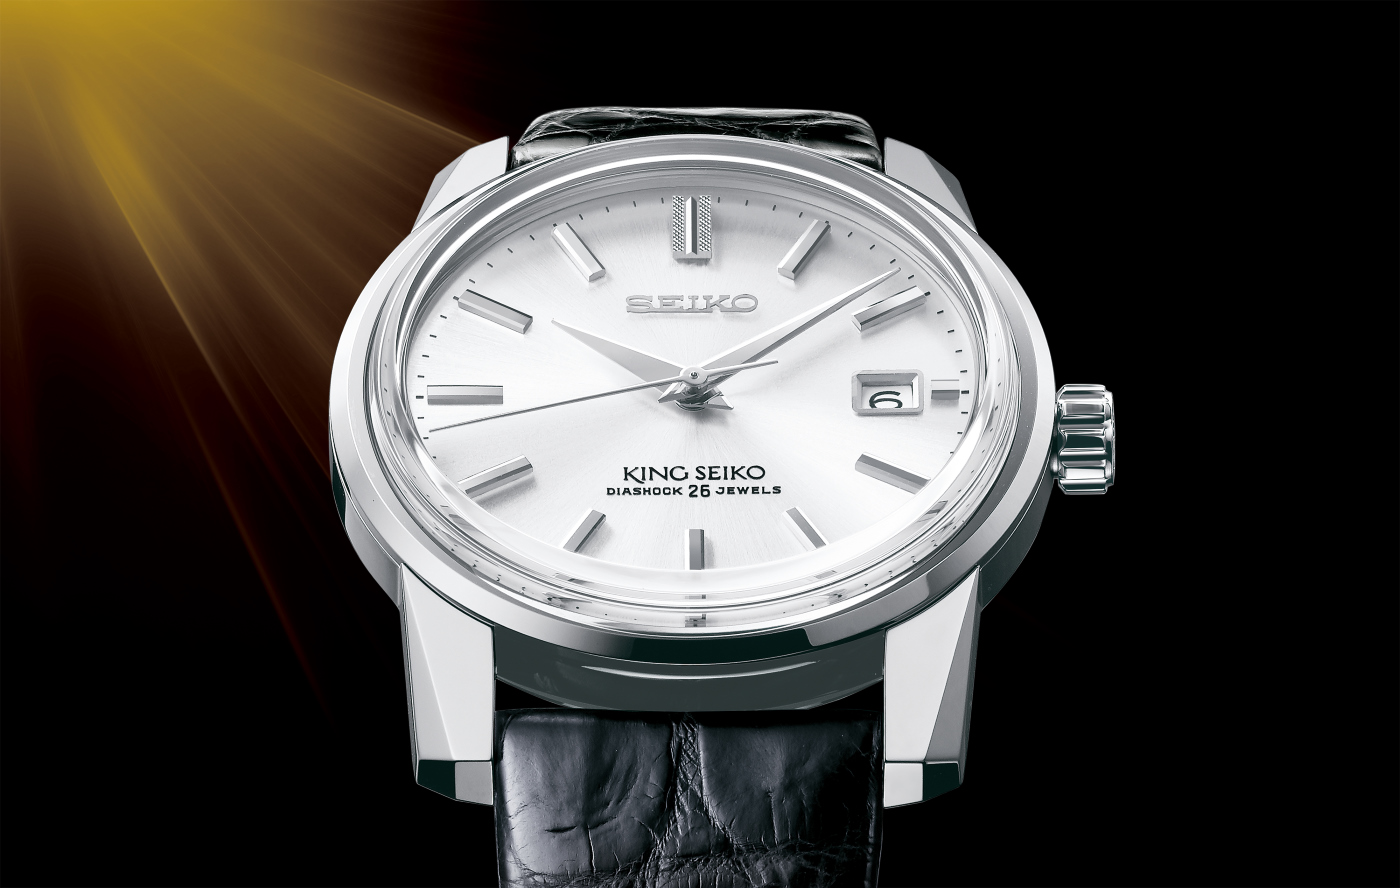 King Seiko: a 1965 classic is re-born!